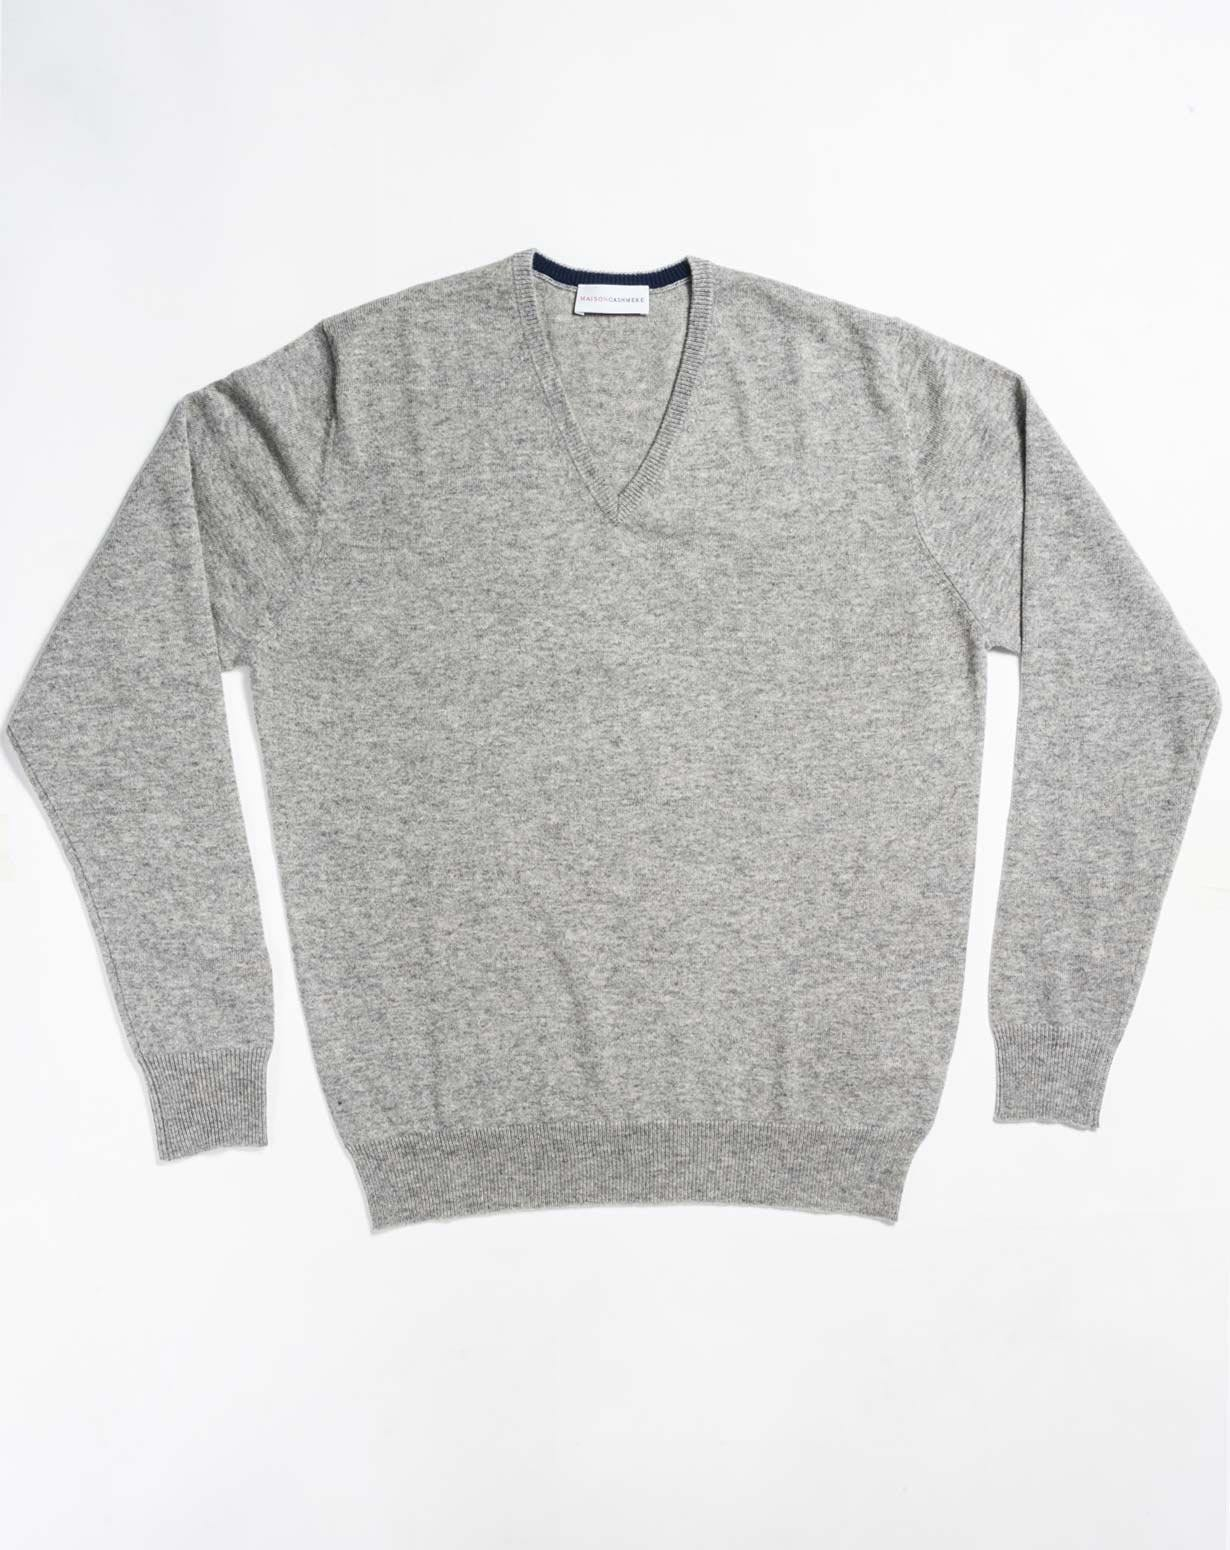 Men's Custom Knits - Cashmere V-Neck